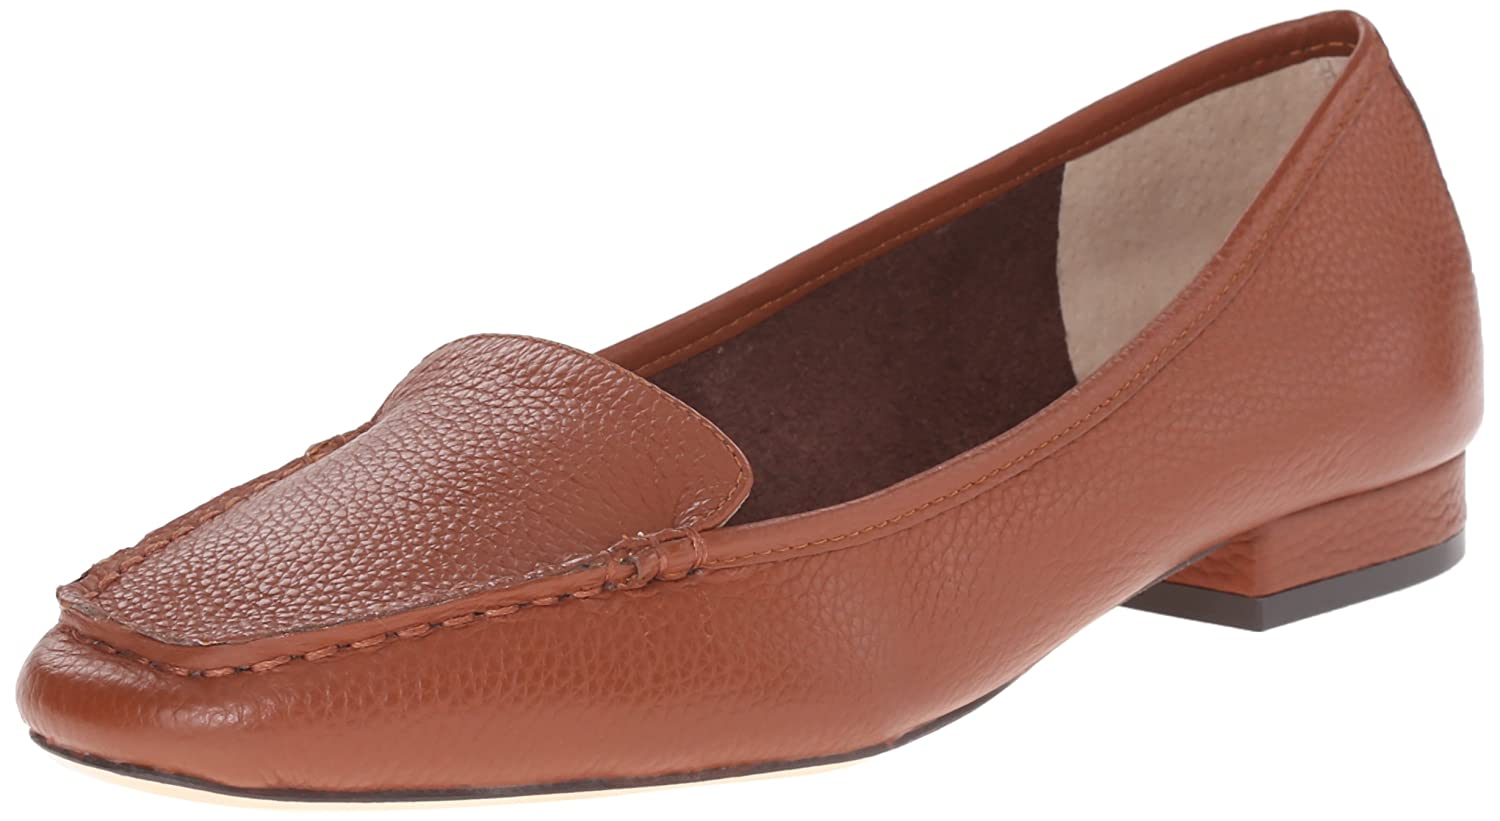 Bettye Muller Women's Valet B(M) Slip-On Loafer B01ALNQ89M 6.5 B(M) Valet US|Whiskey 49638a